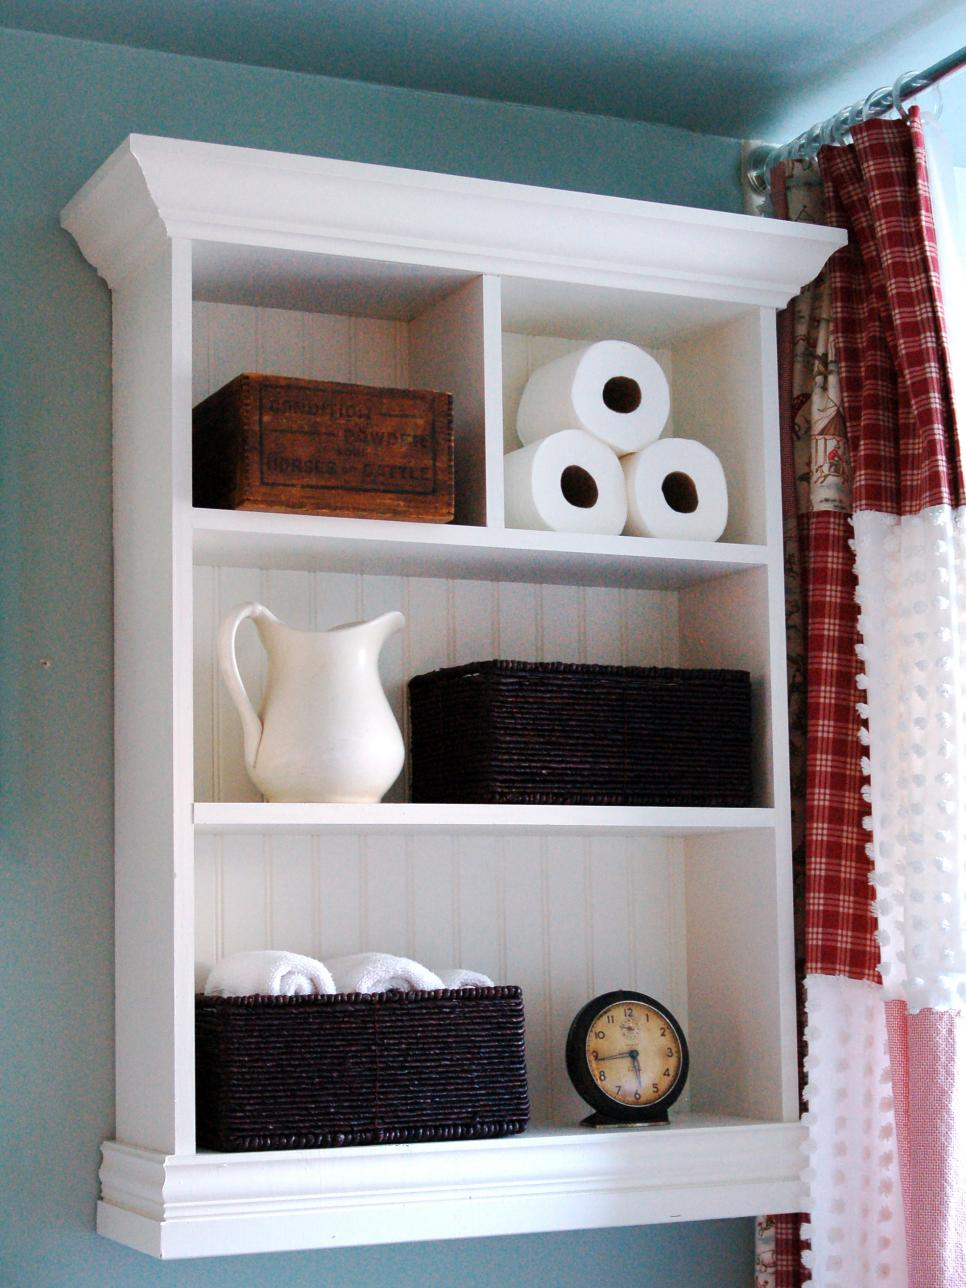 12 clever bathroom storage ideas hgtv - Bathroom Cabinet Designs Photos